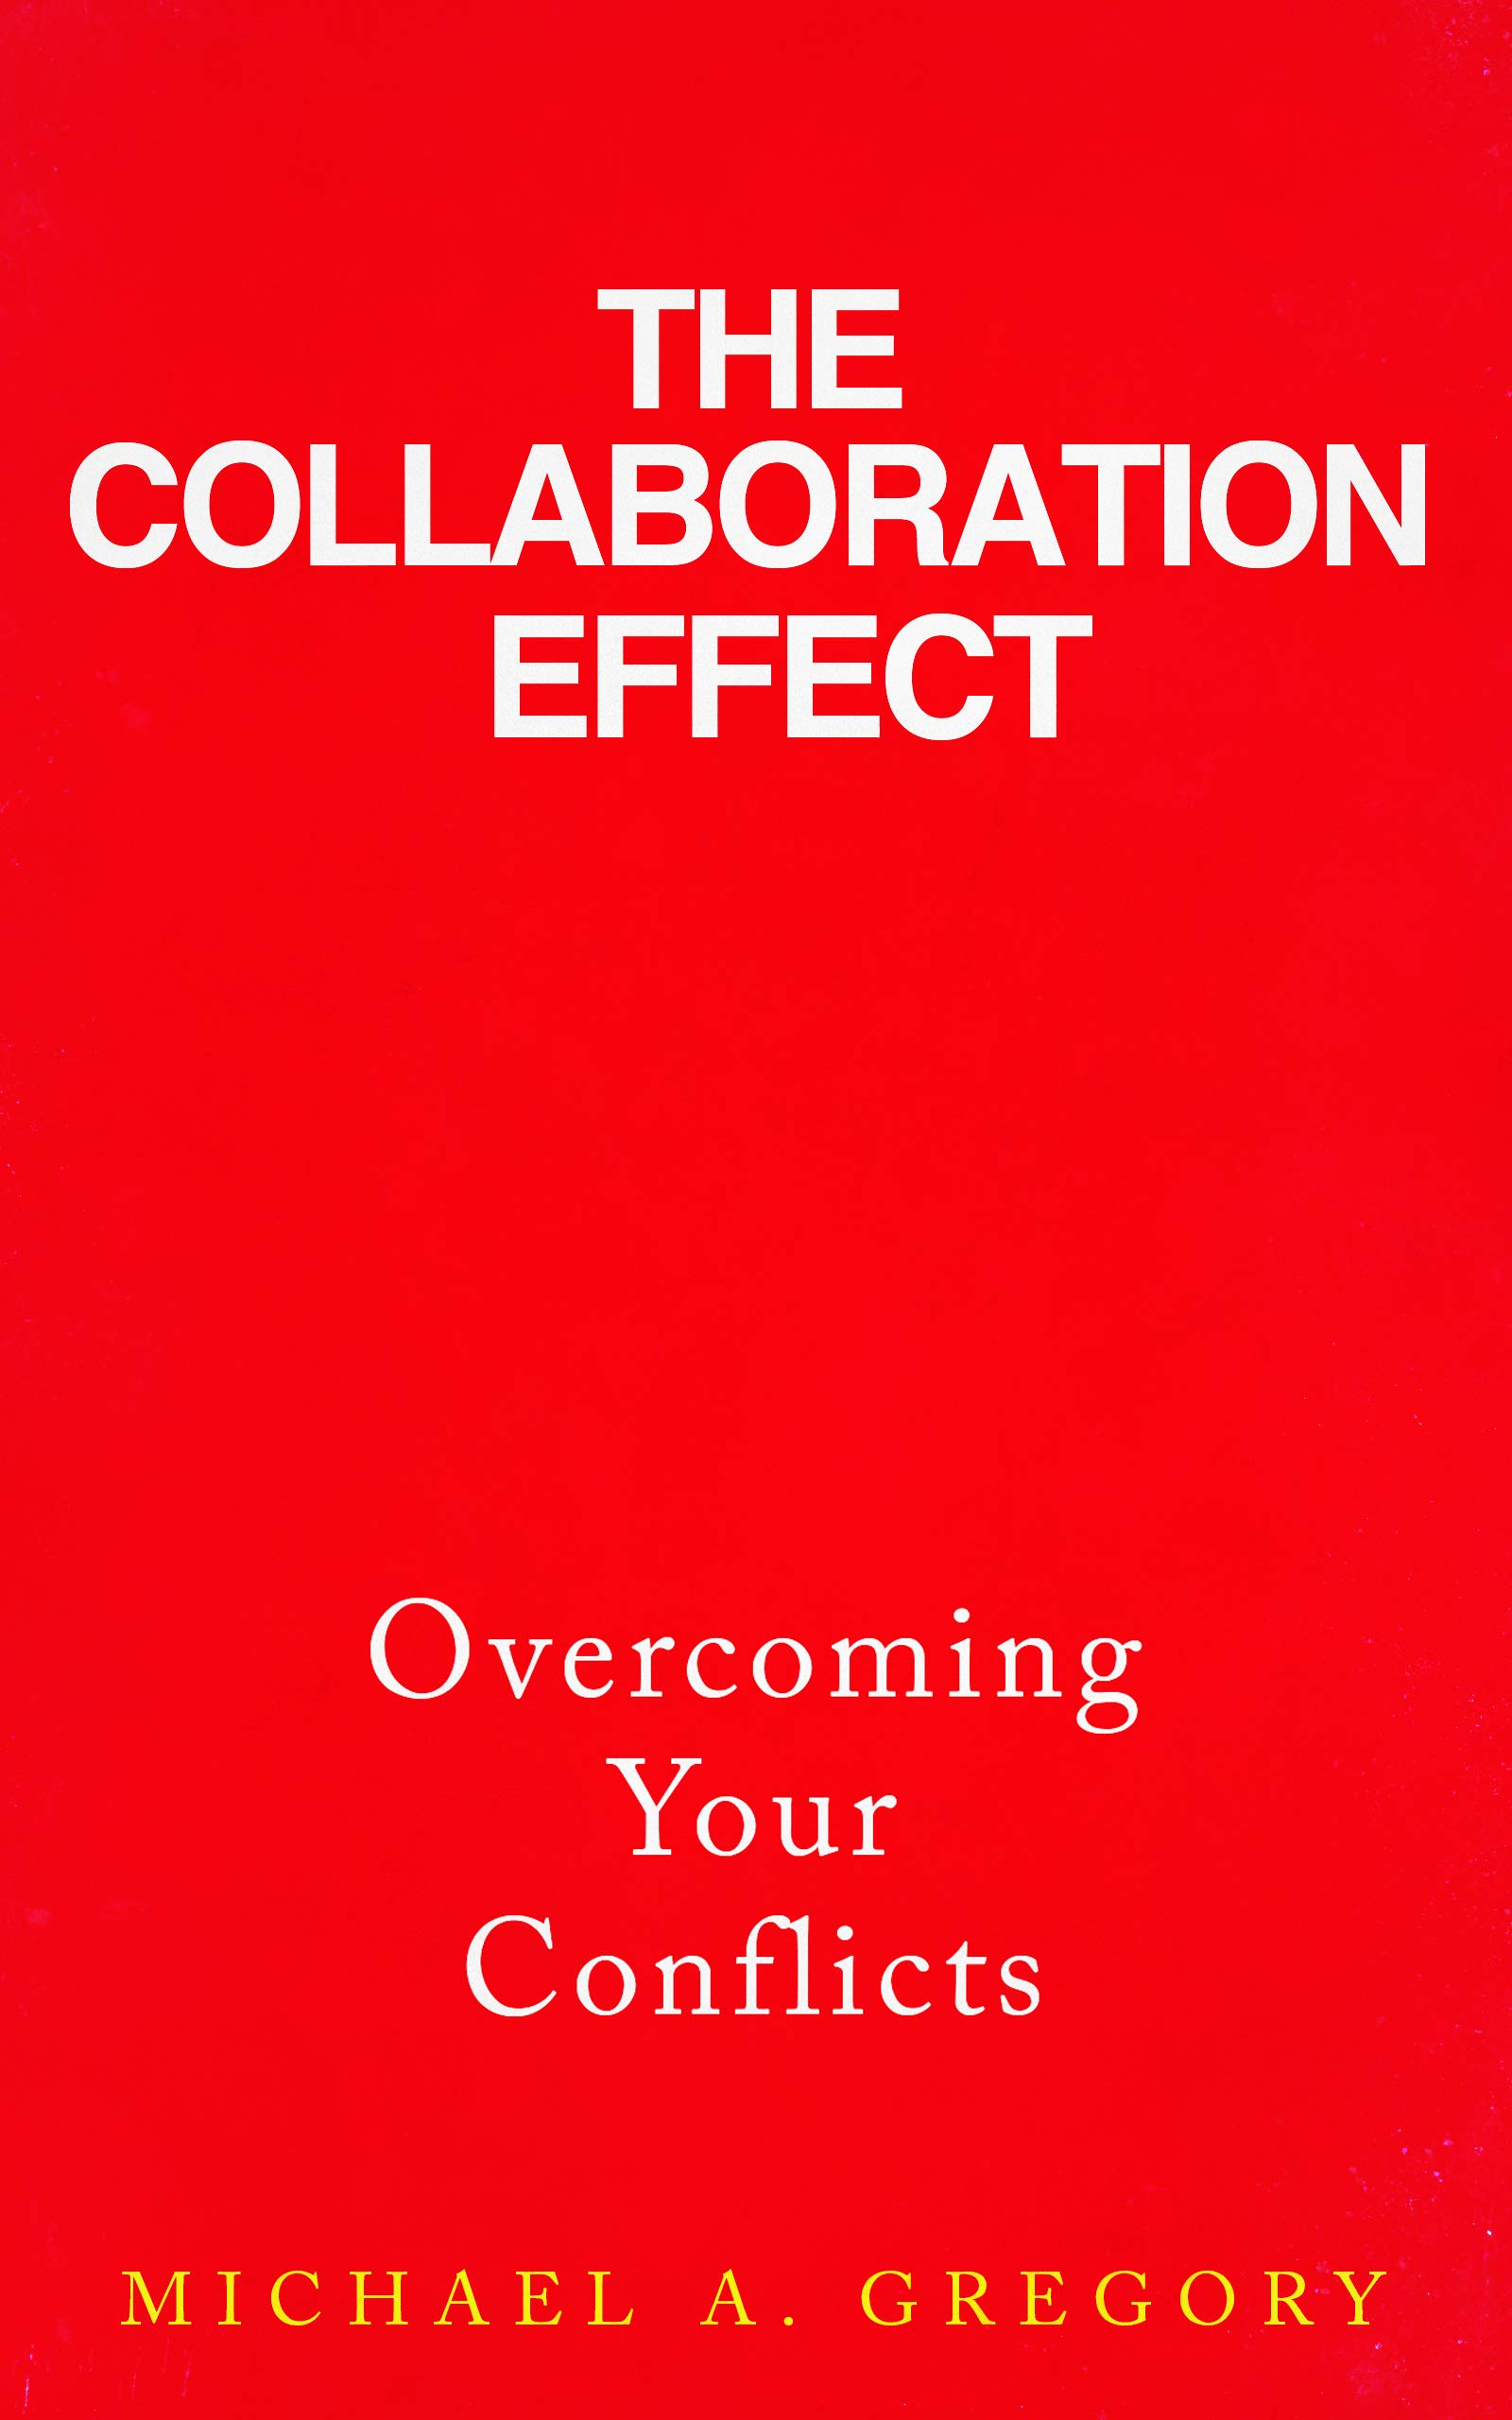 The Collaboration Effect: Overcoming Conflict with Collaboration